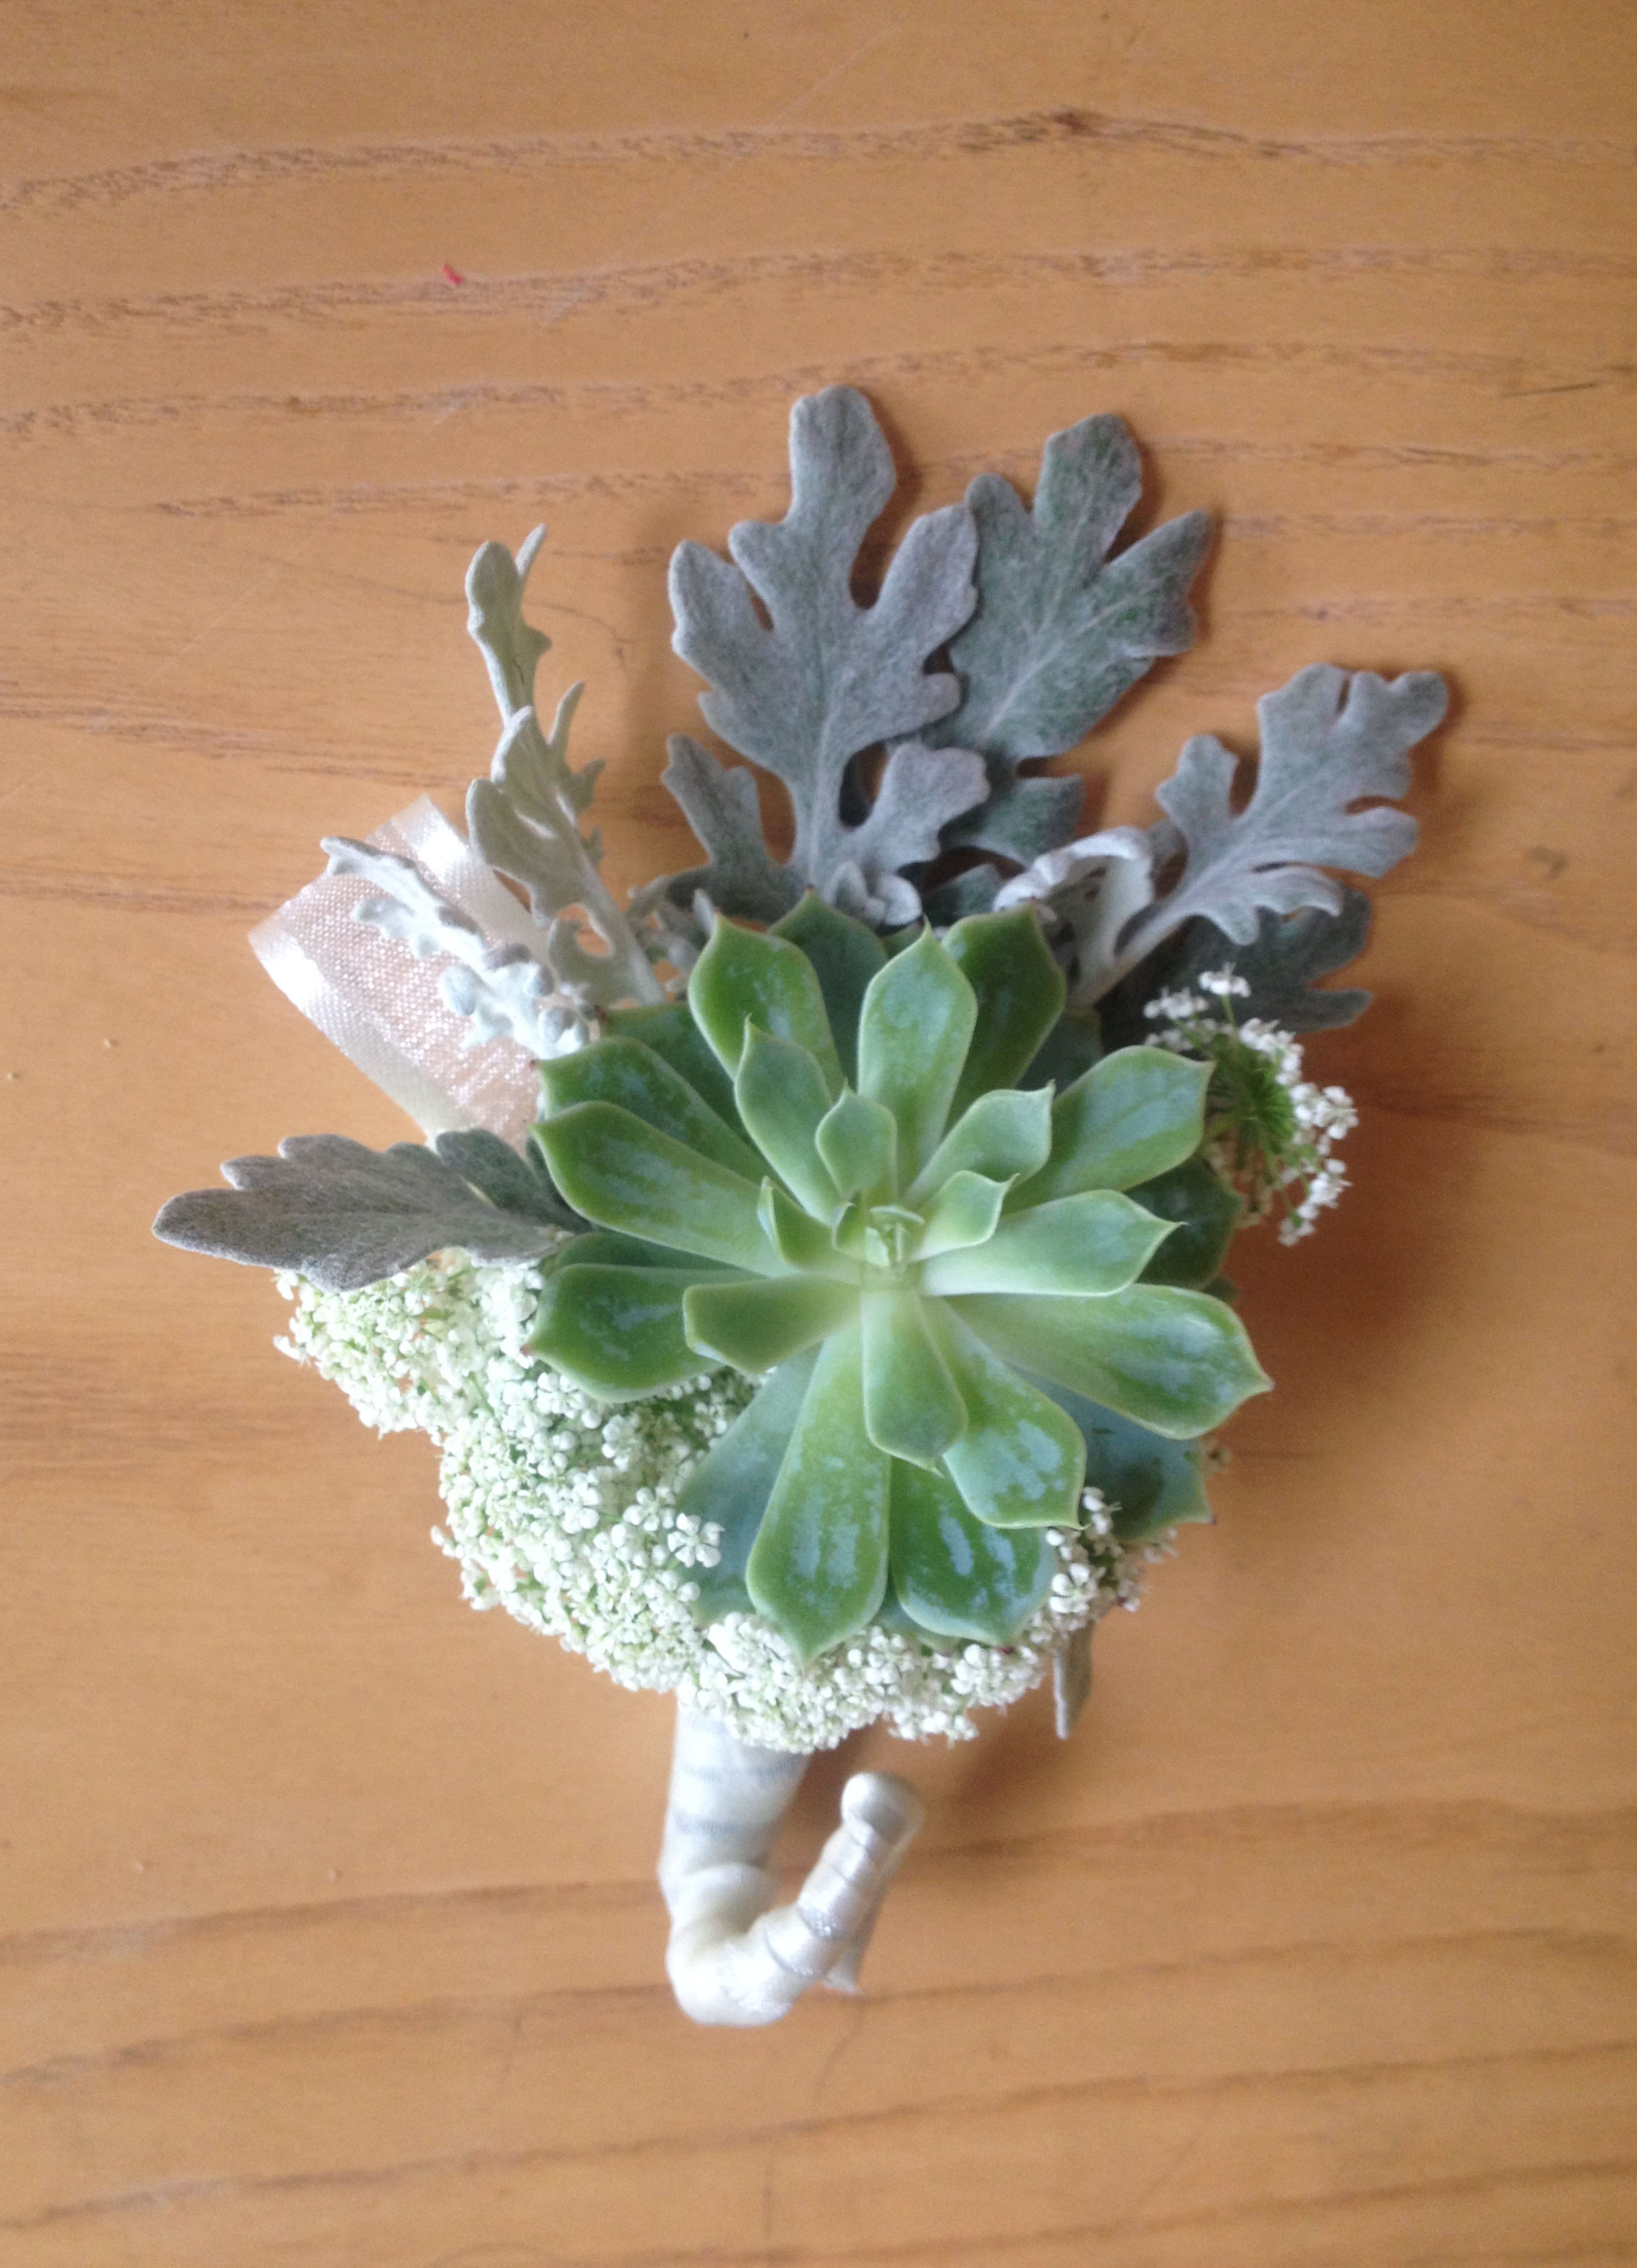 Here's the succulent boutonniere